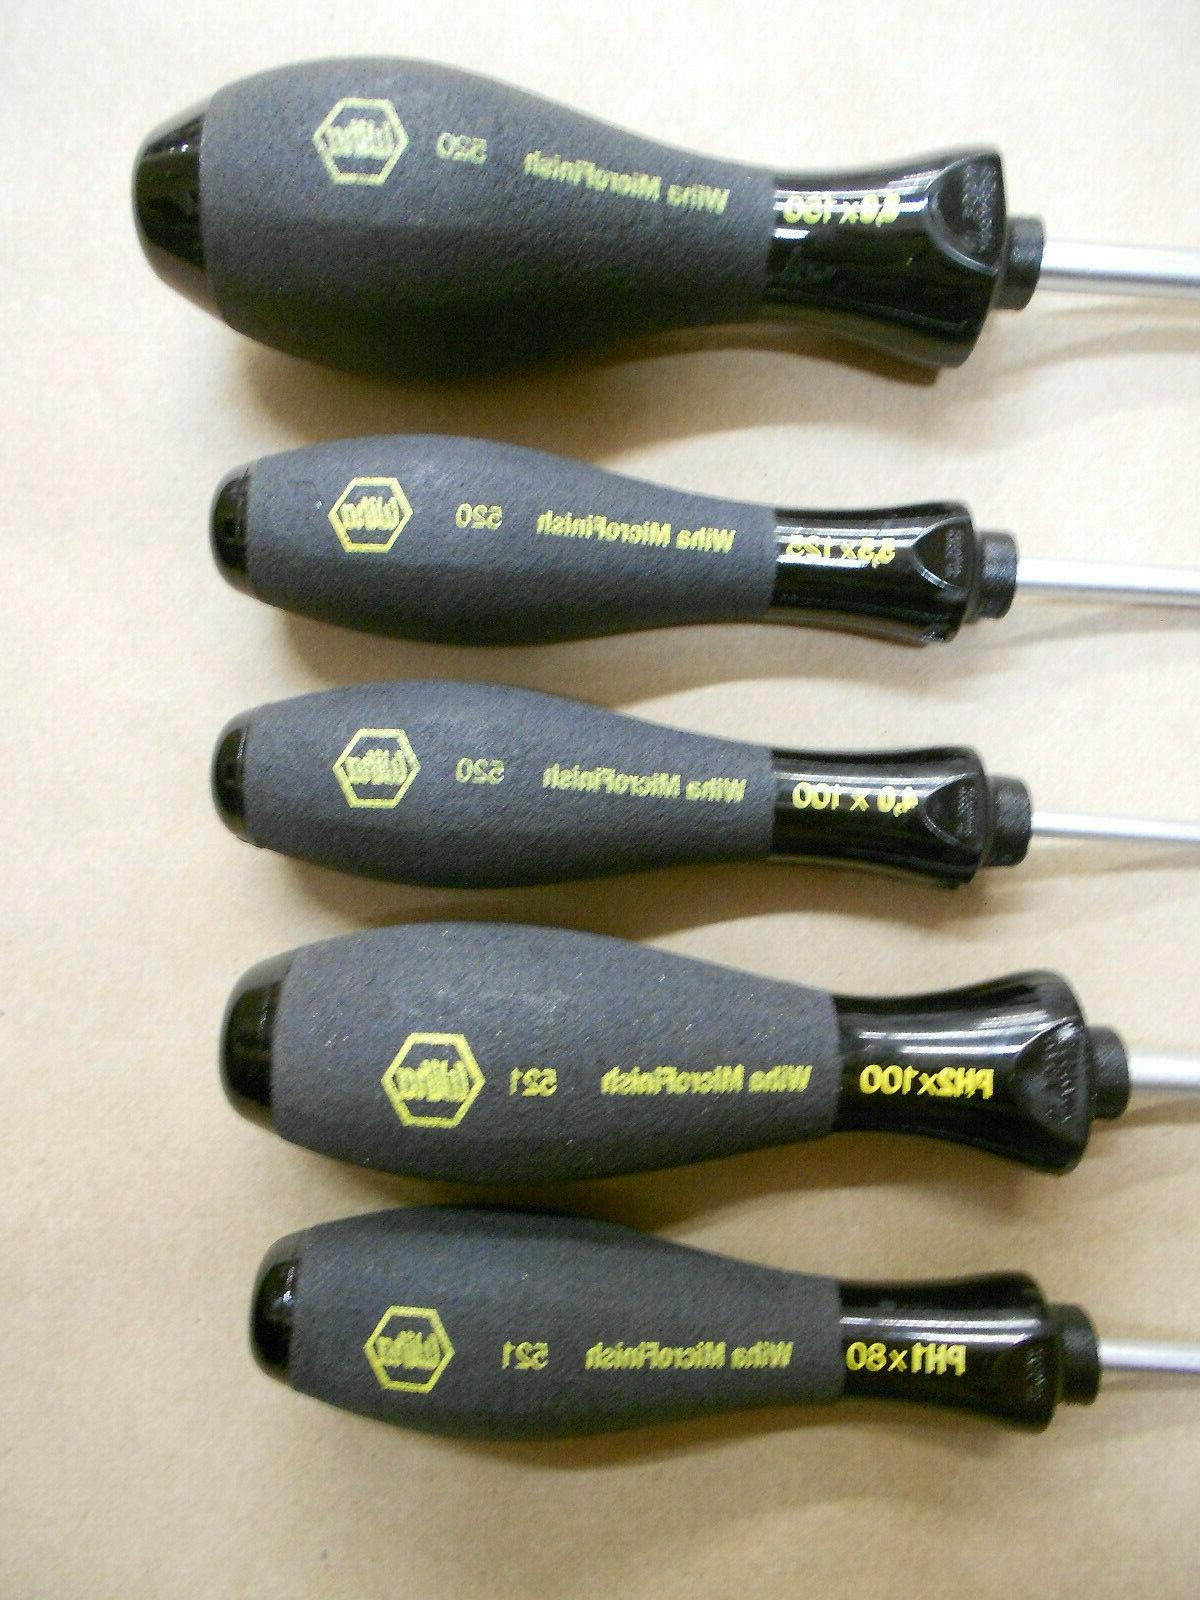 Wiha Screwdriver Slotted and 5 Non Slip Grips Free